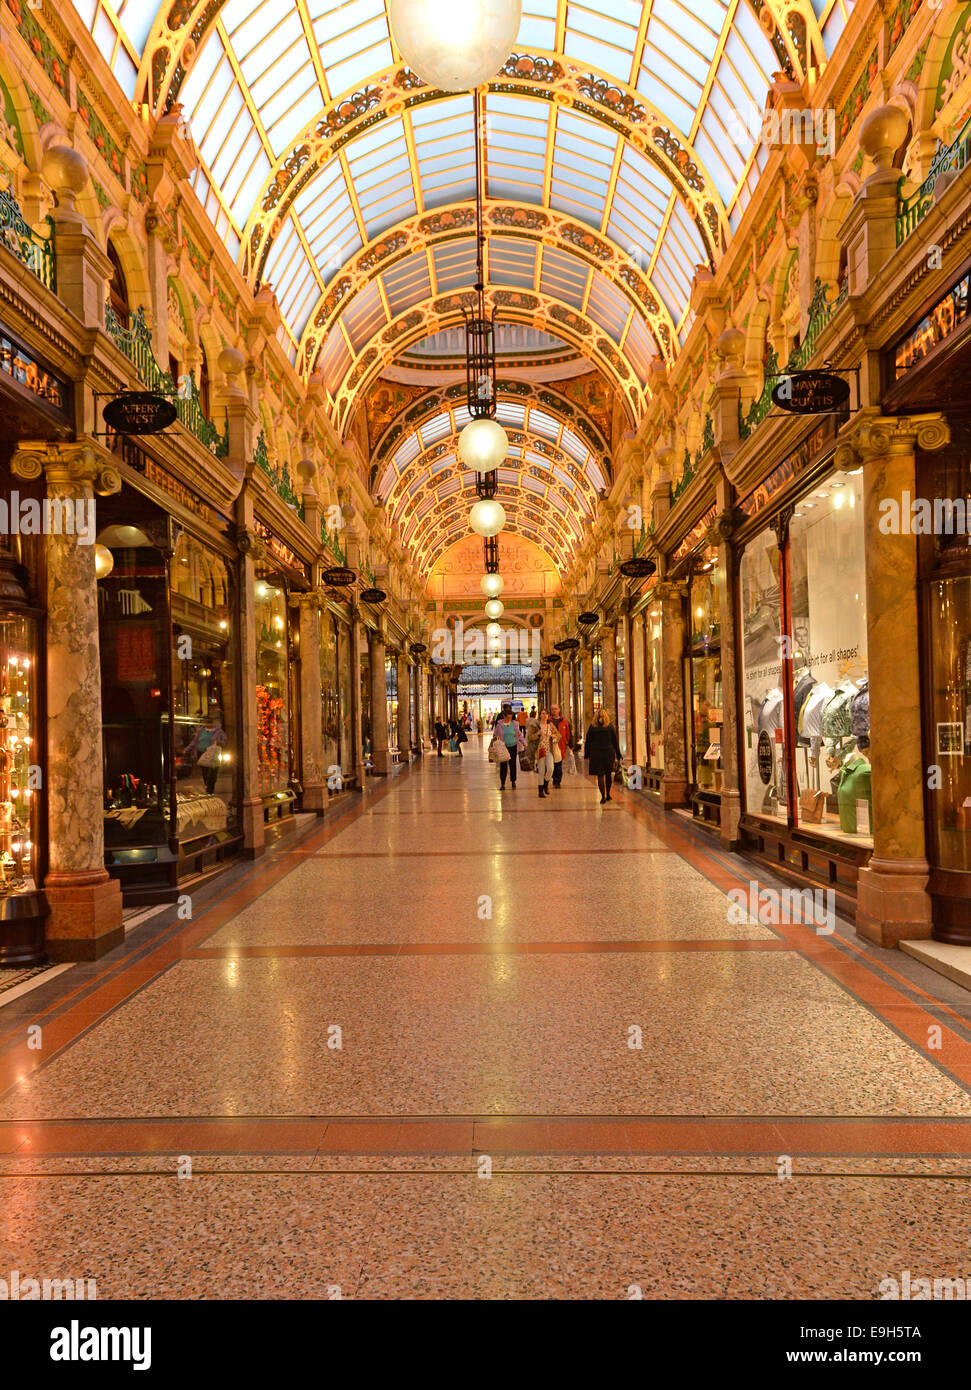 County Arcade, Victoria Quarter, Leeds, West Yorkshire, England, United Kingdom Stock Photo